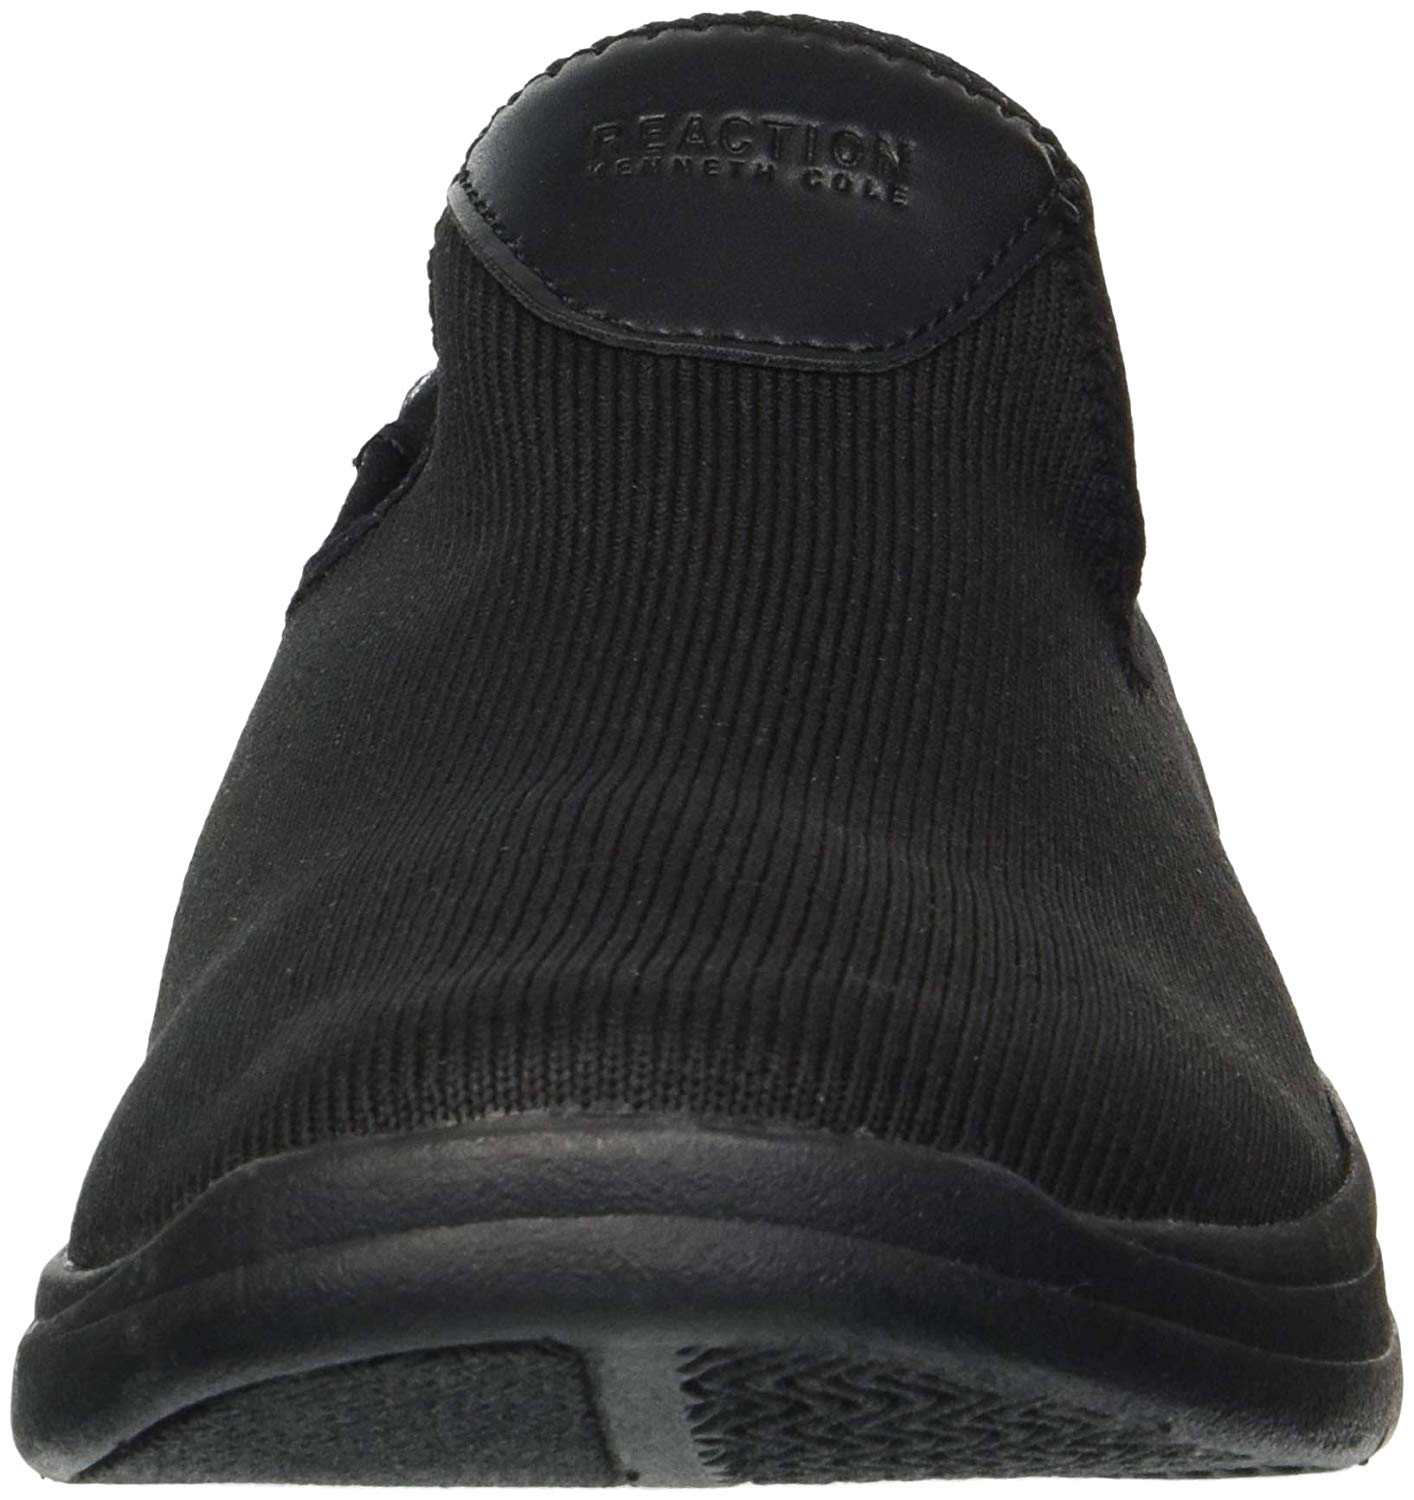 2fdb487a27cfa Details about Kenneth Cole REACTION Women's The Ready Slip on Sneaker,  Black, Size 6.0 J2E8